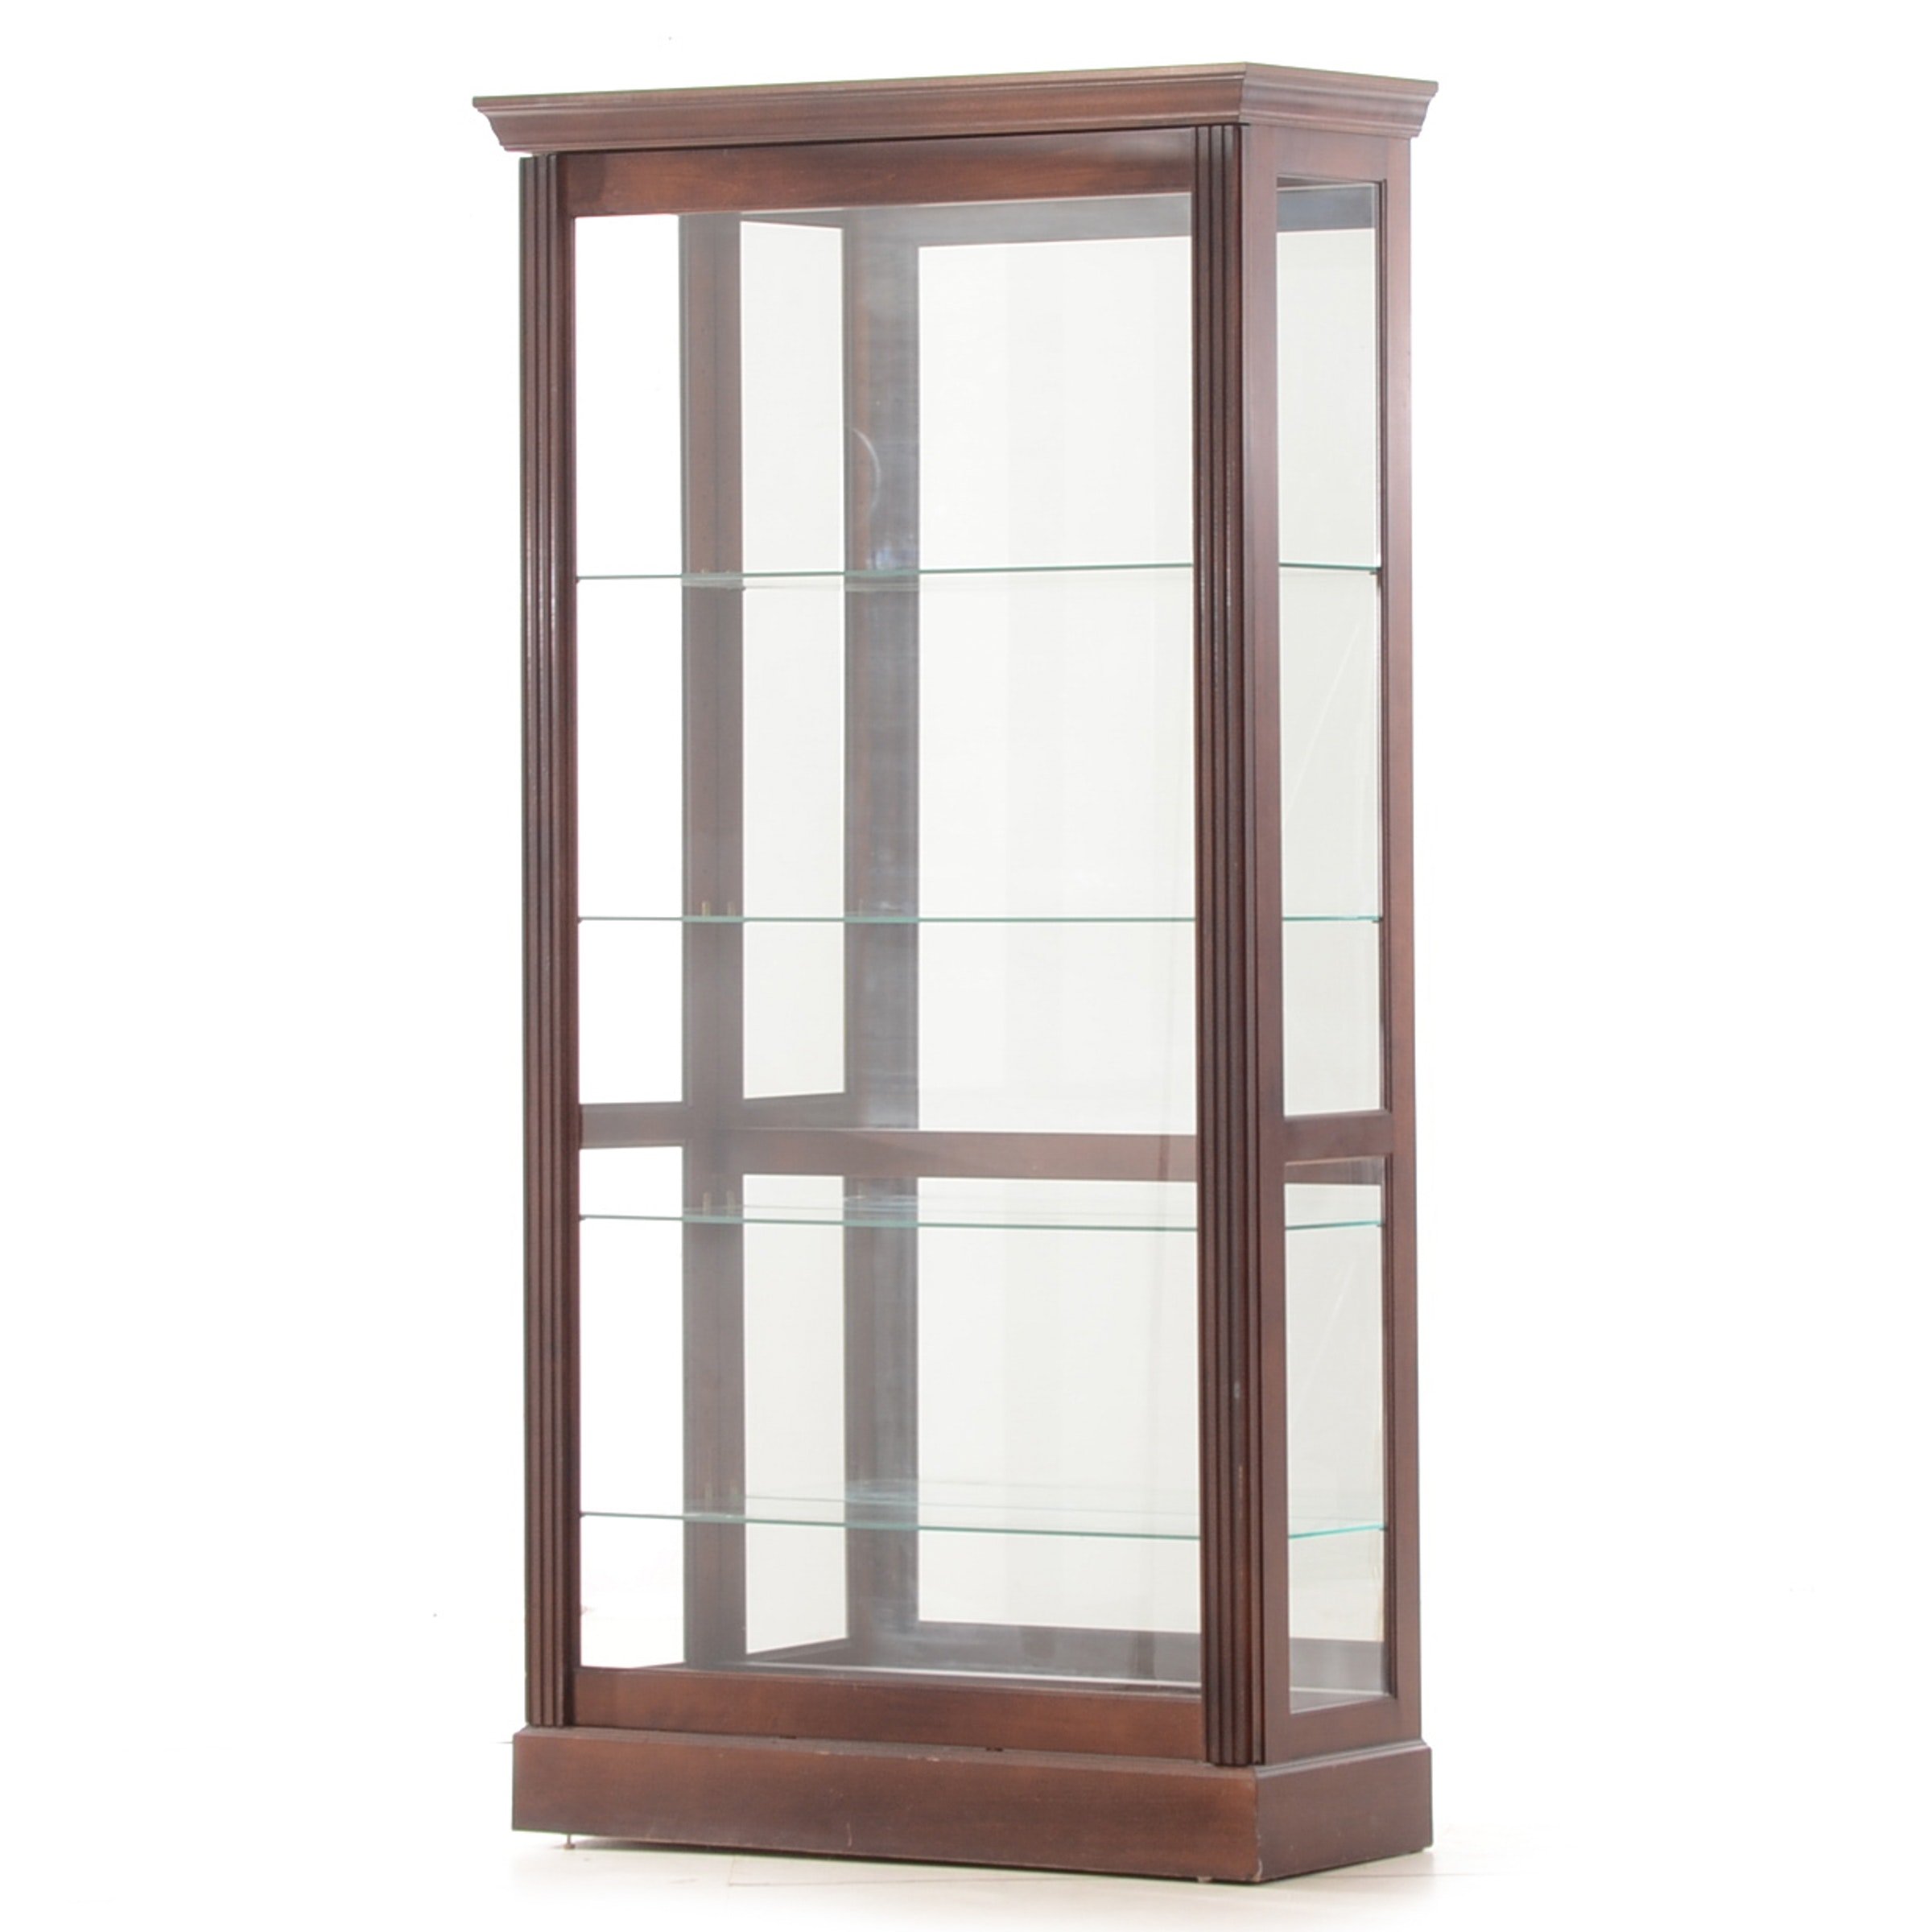 Pulaski Lighted Display Cabinet